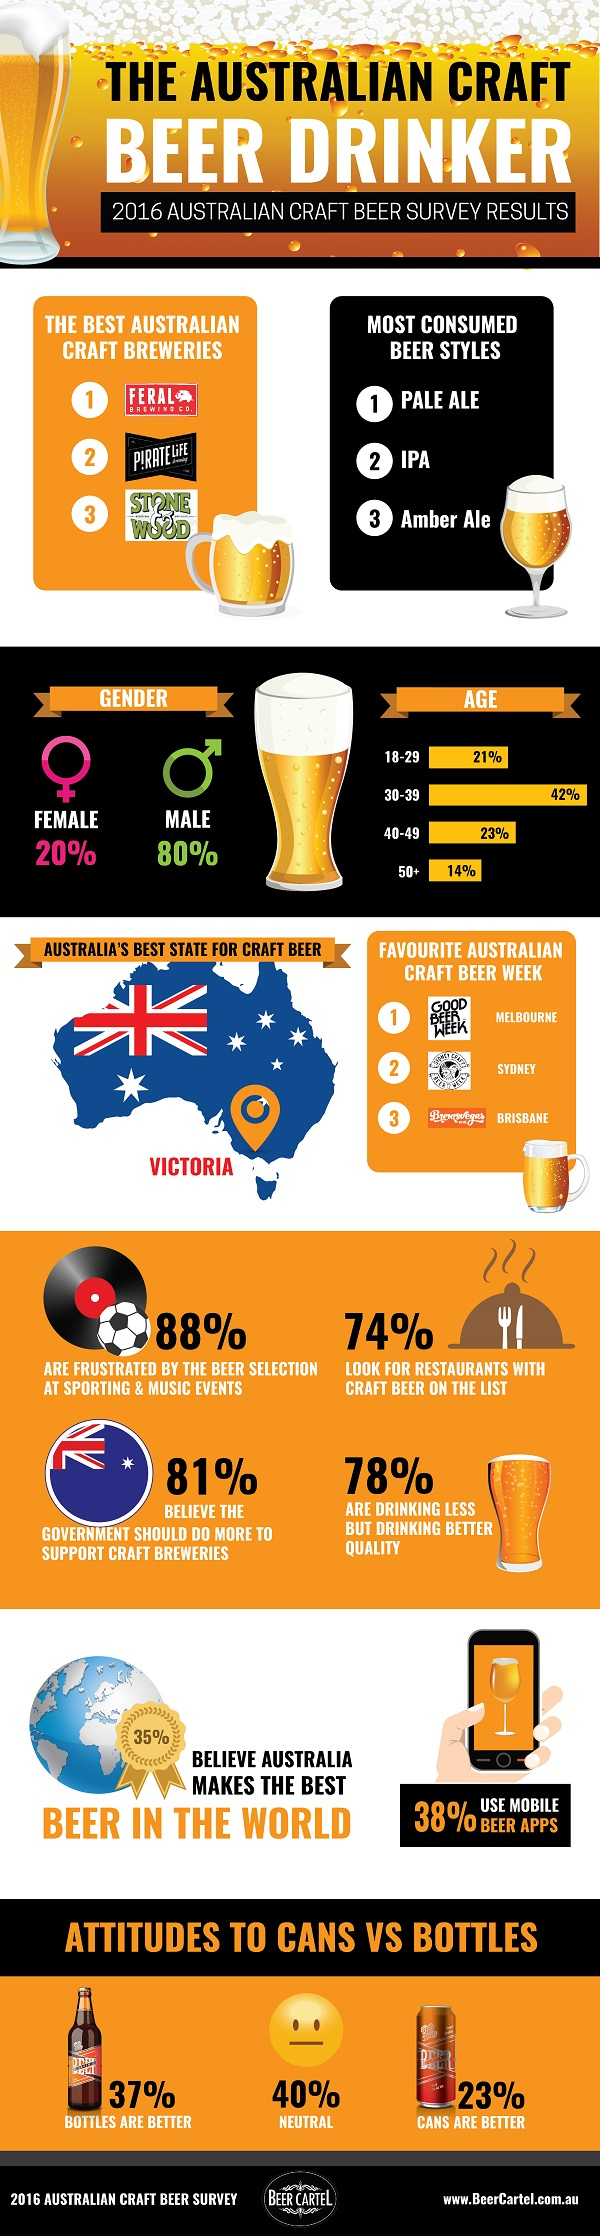 2016 Australian Craft Beer Survey Infographic